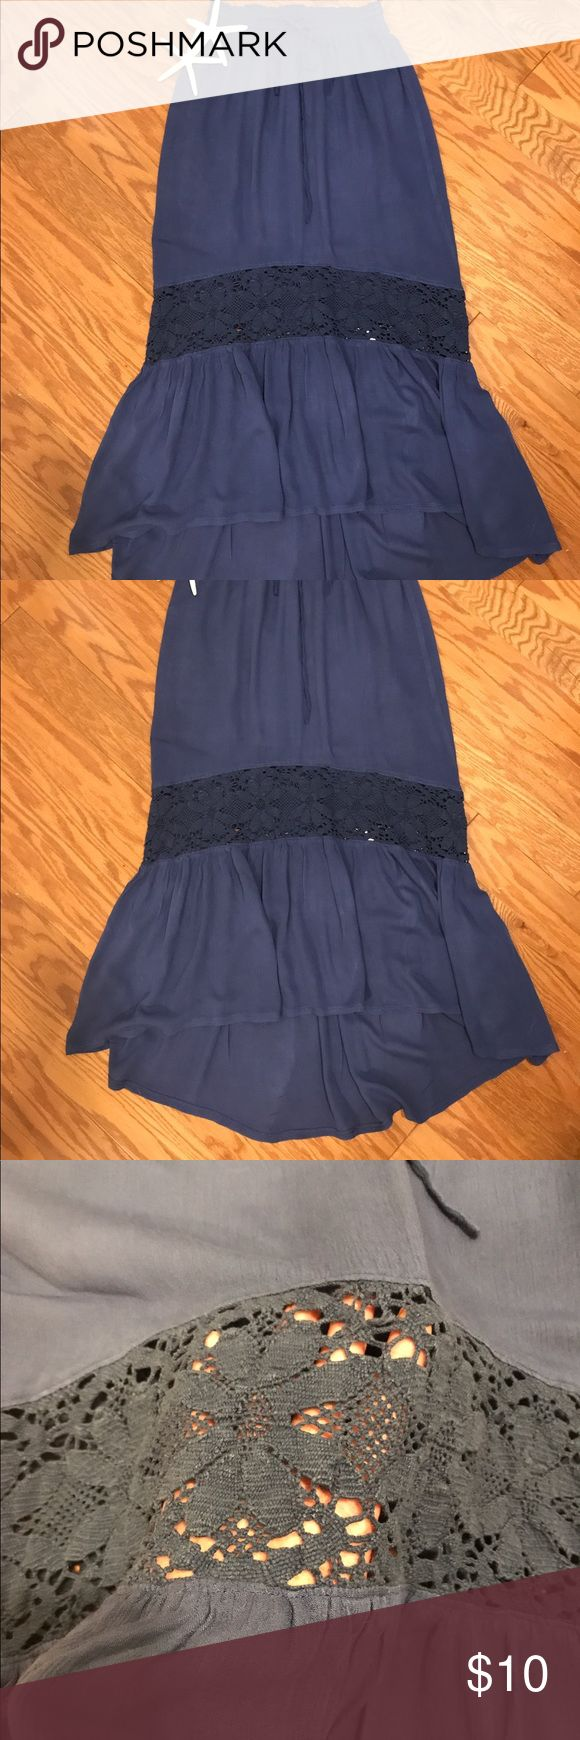 The perfect summer skirt!!🌺🌸🌺REDUCED Dark blue cotton skirt that is cool and stylish for any summer day! Looks great with a simple white tank or tee with a necklace and either flip flops or wedges! Longer in the back and decorative see through floral patterned knitting! Very cute and in good condition! Aeropostale Skirts Asymmetrical